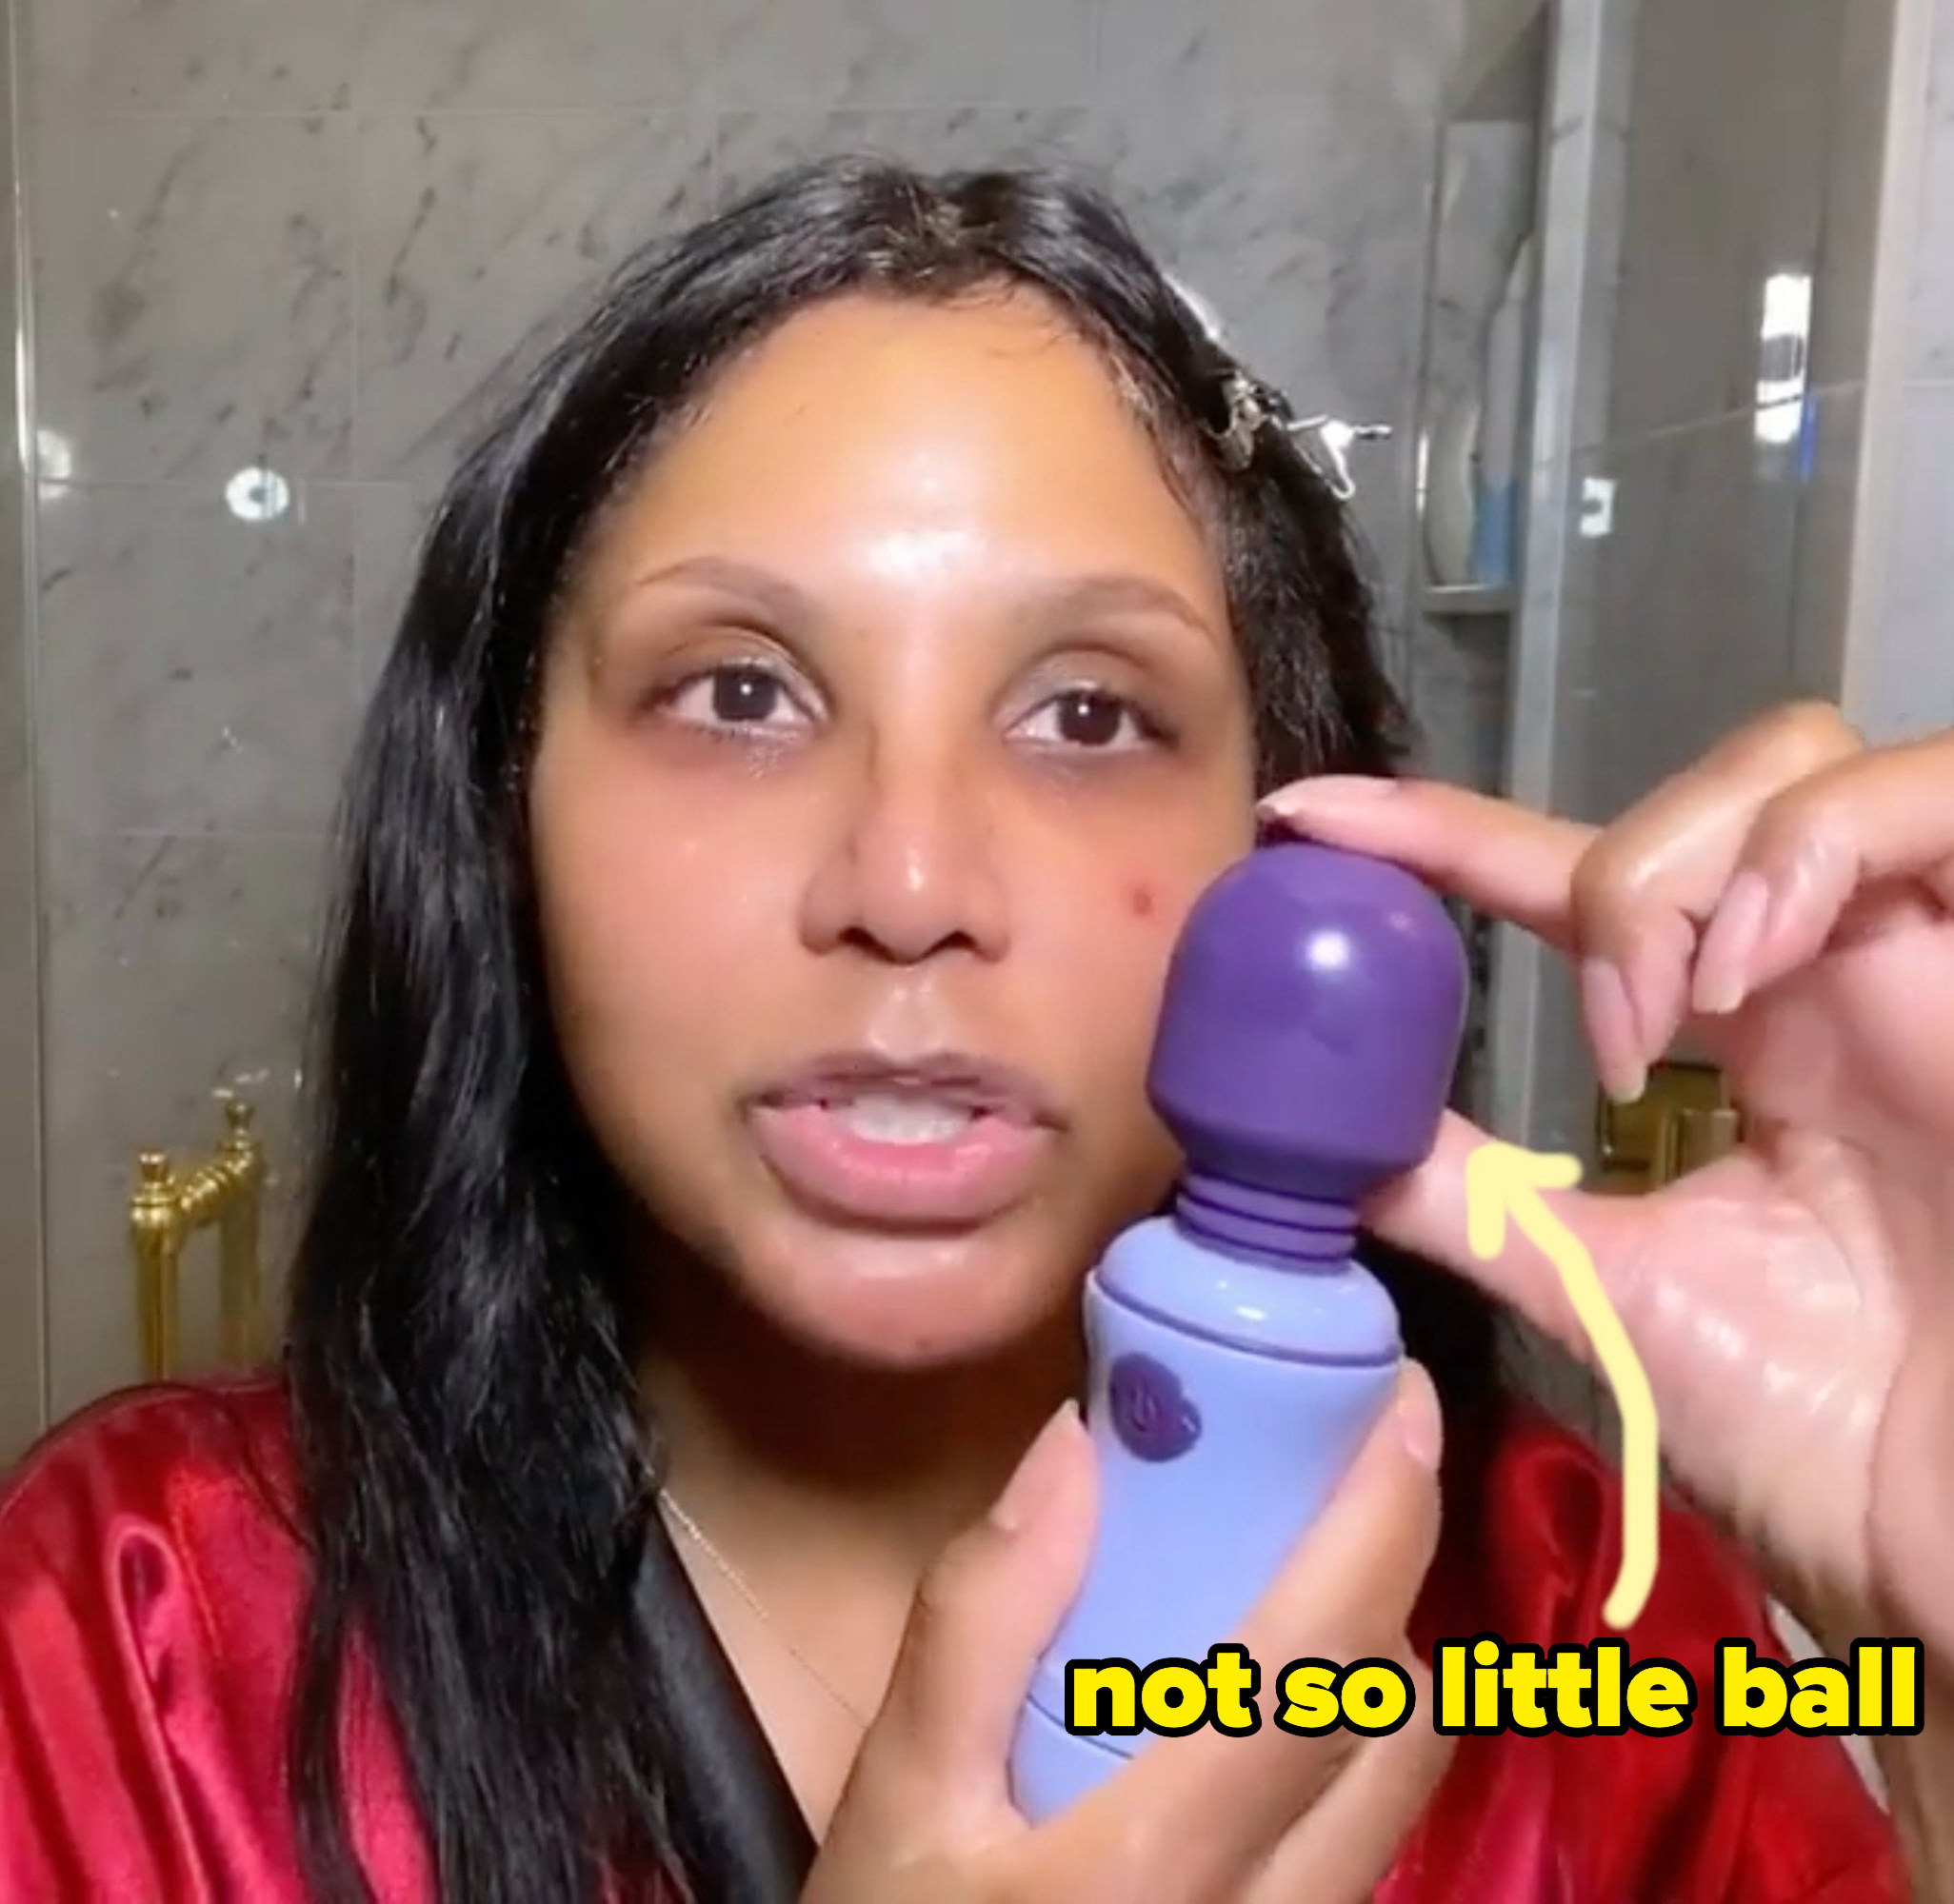 Toni touching the ball on her vibrator